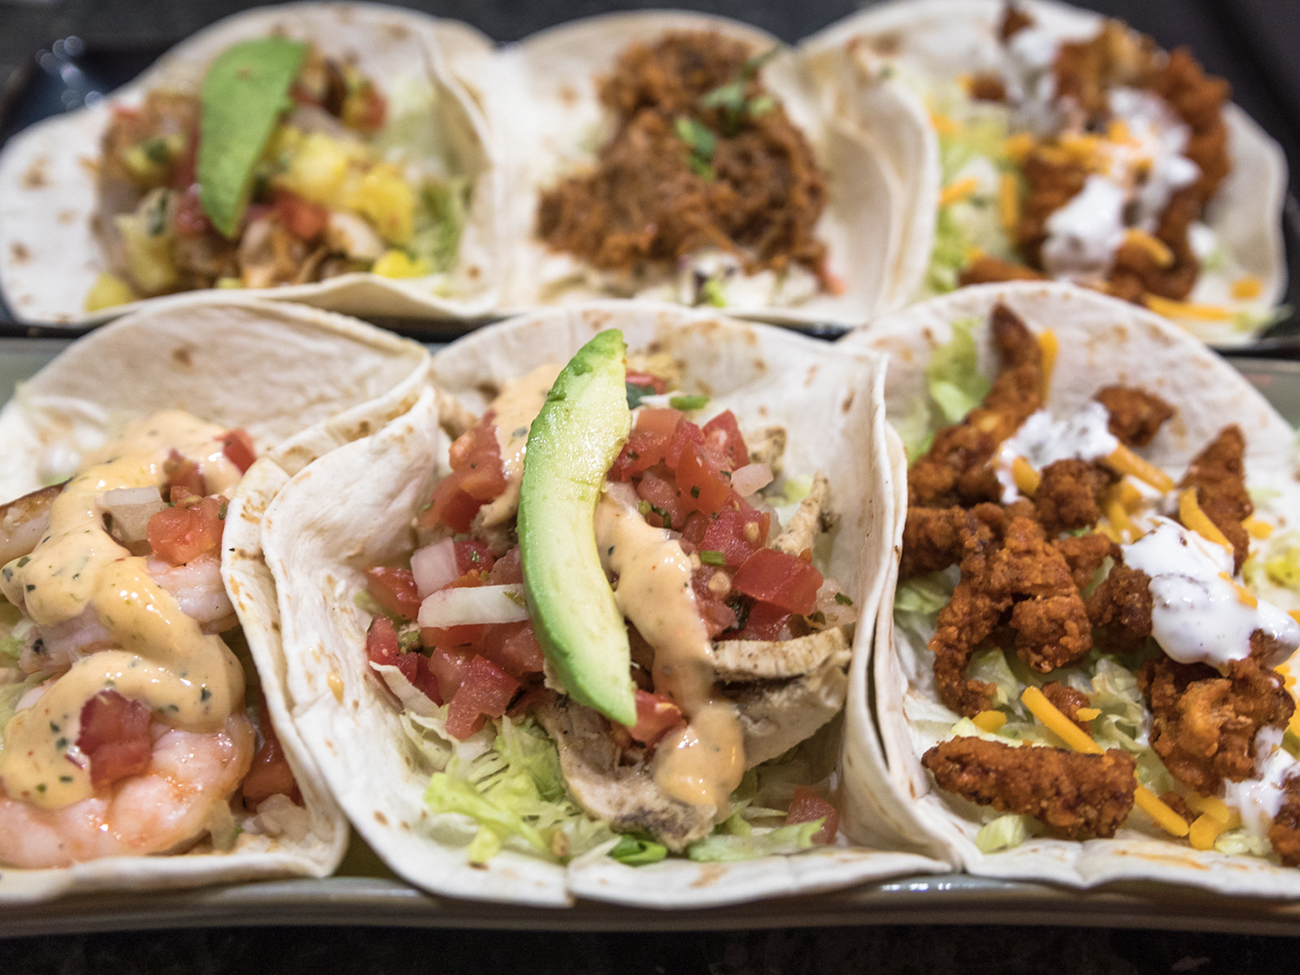 7 tasty Taco Tuesday specials for those obsessed with $2 tacos